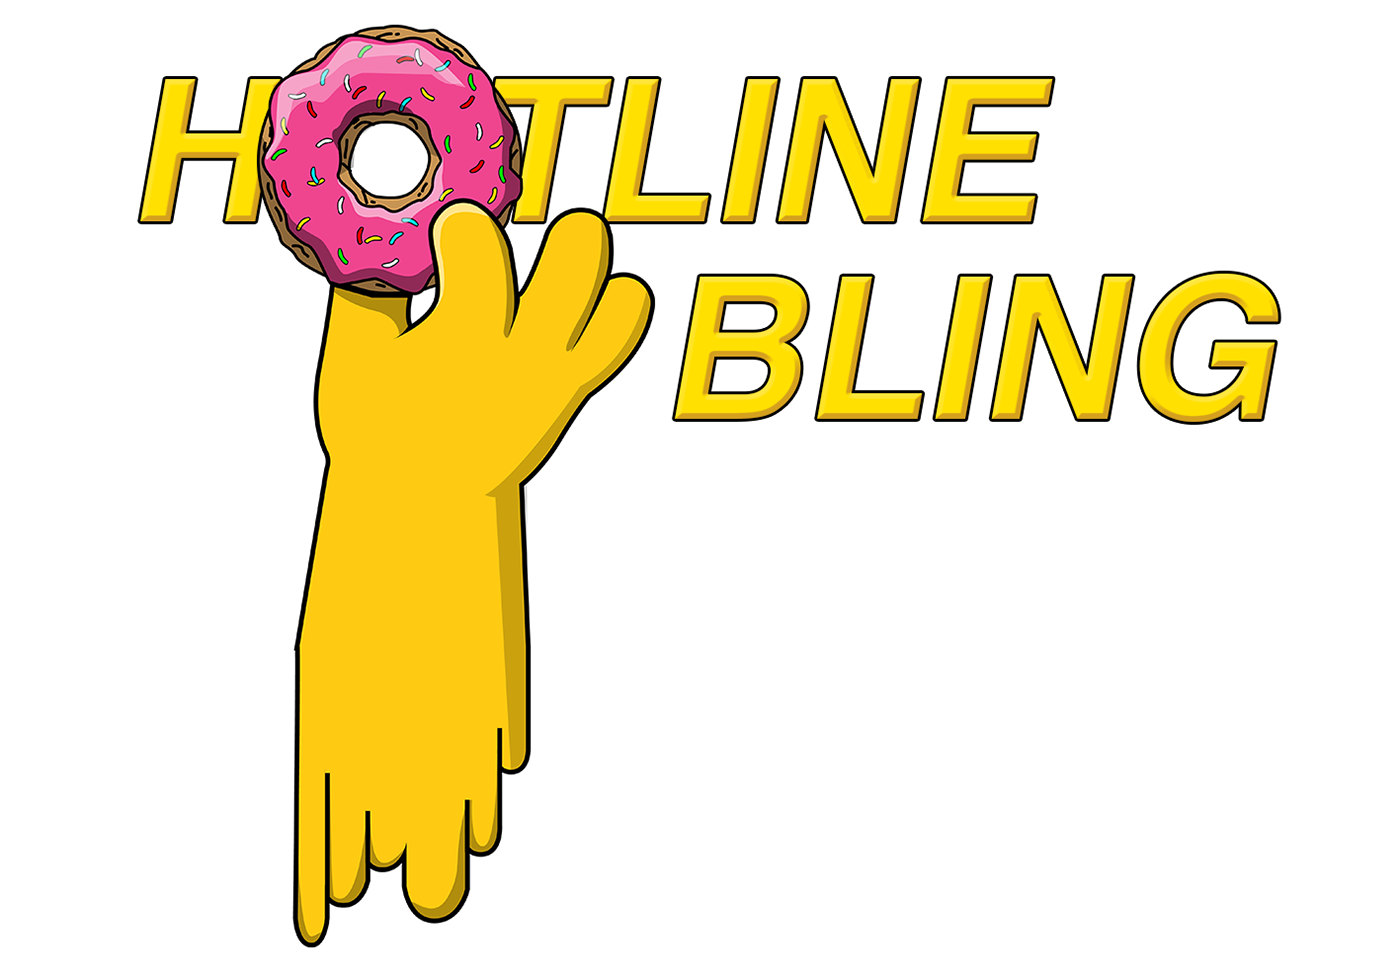 Hotline bling png. Simpsons x on behance